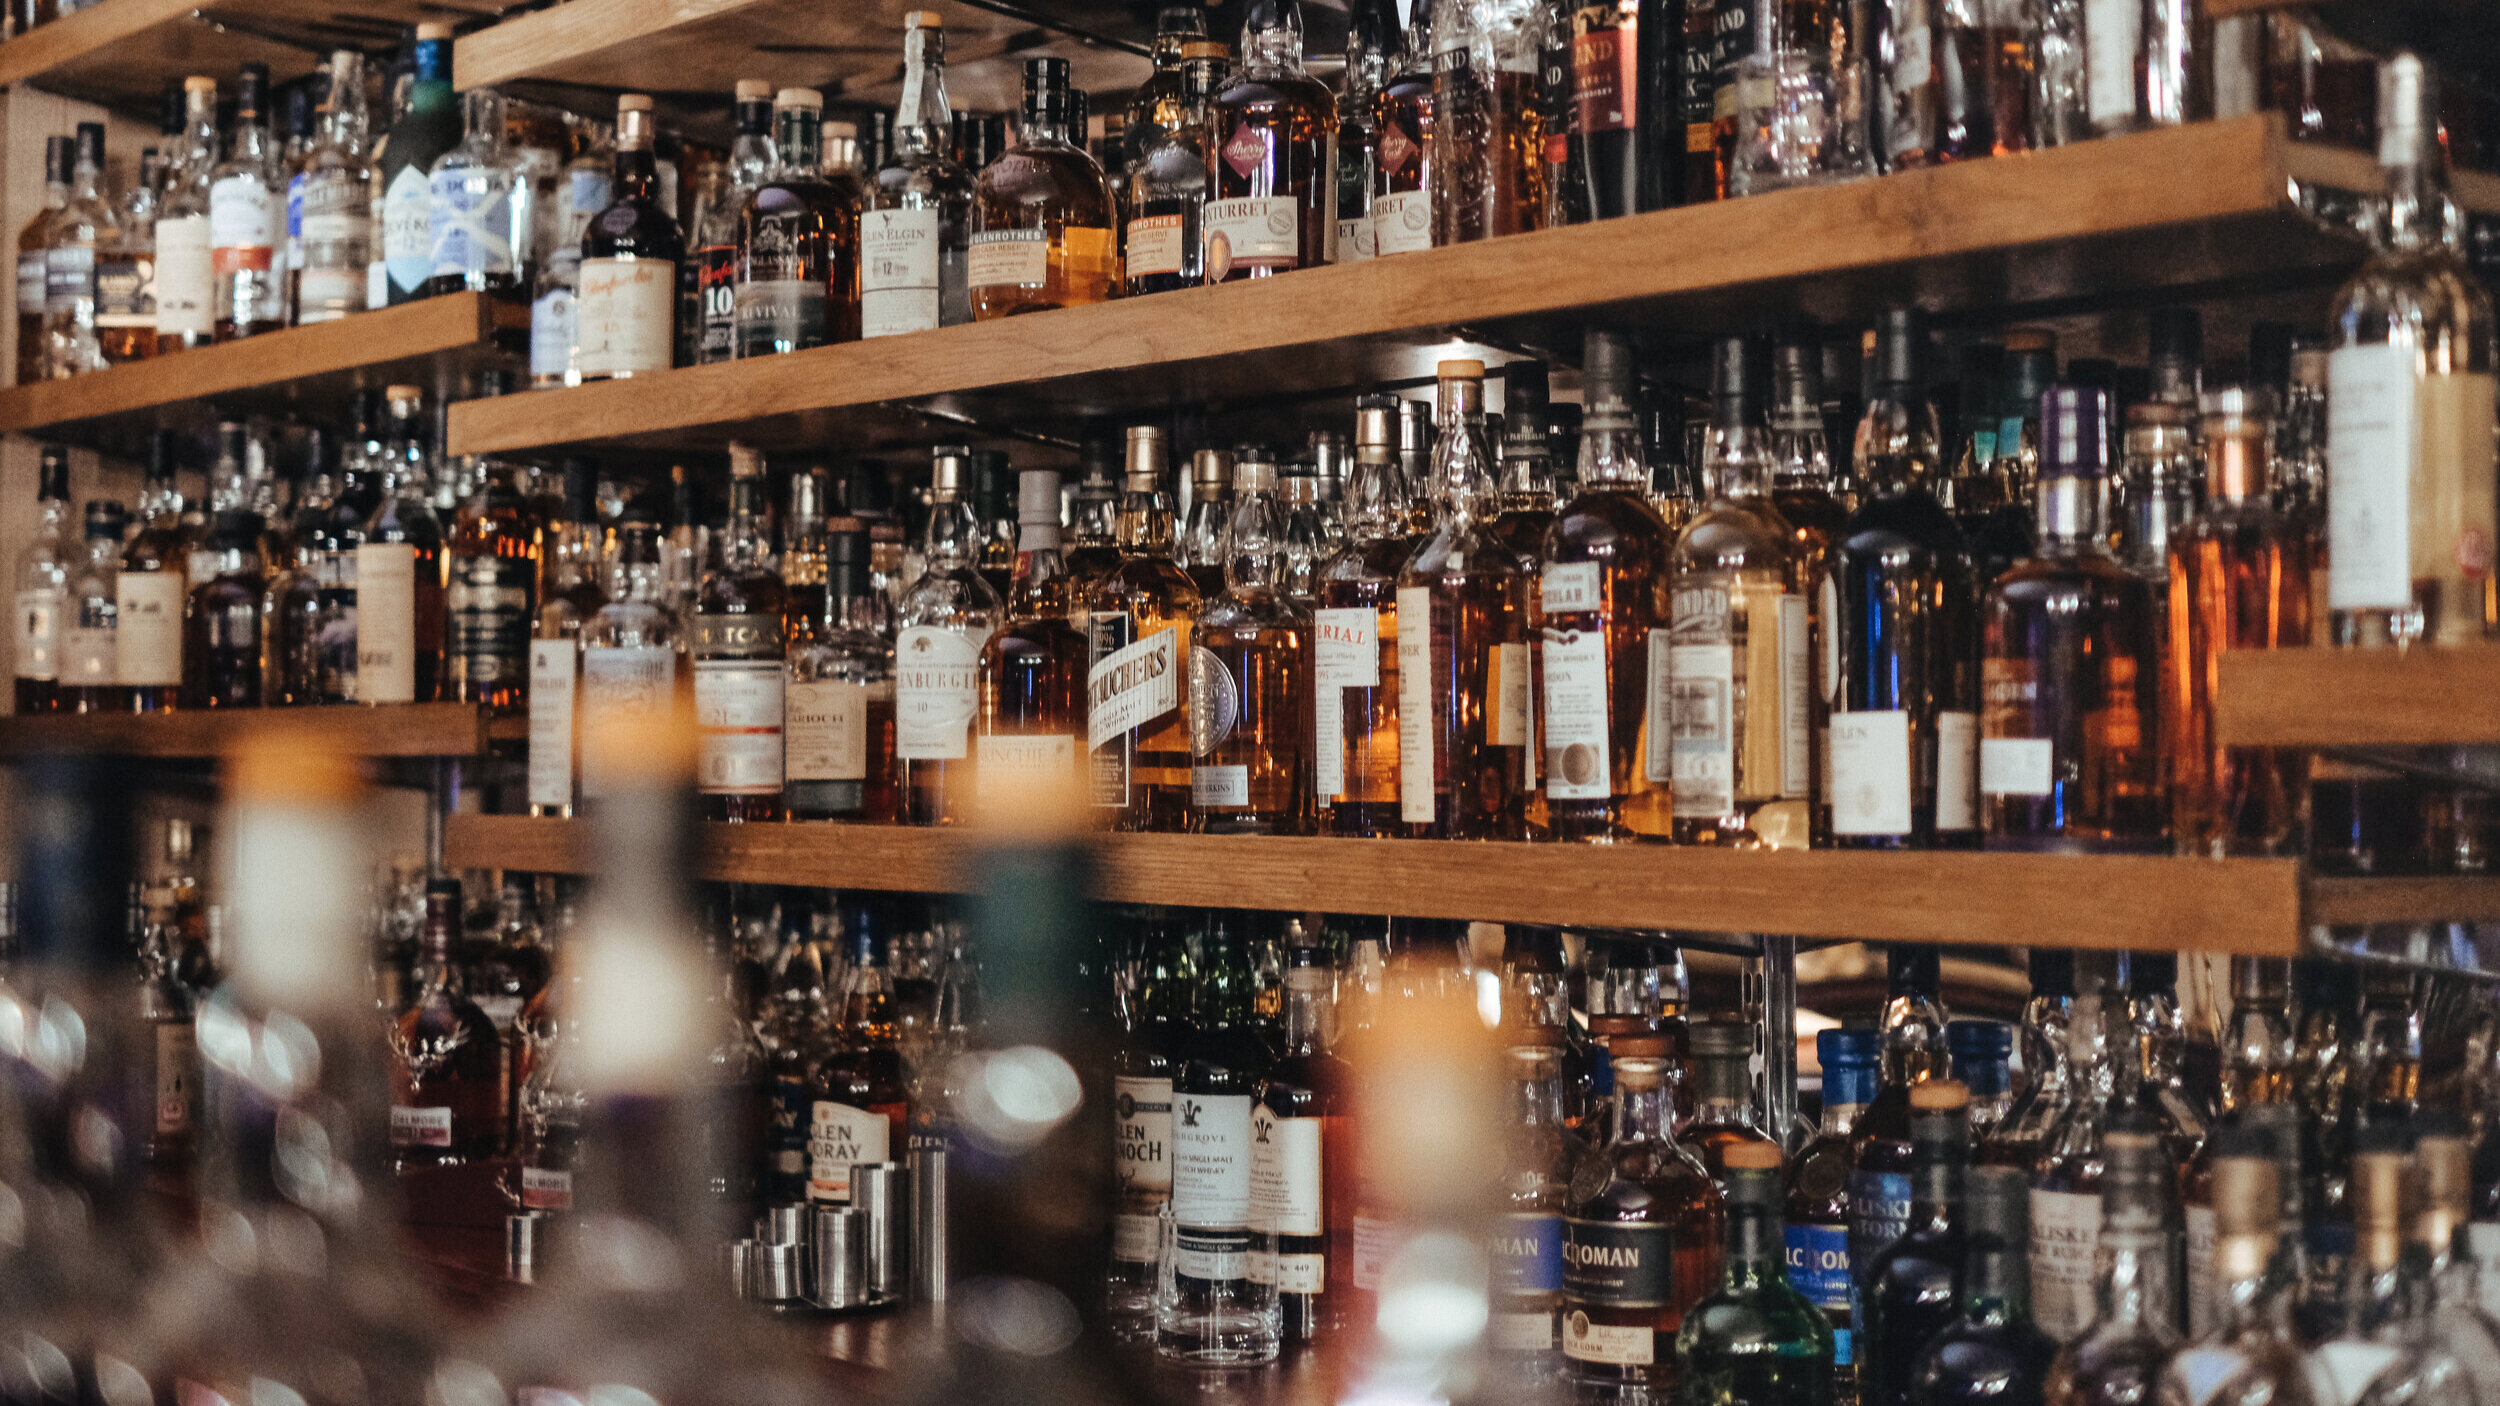 How many different types of Scotch Whisky are there?